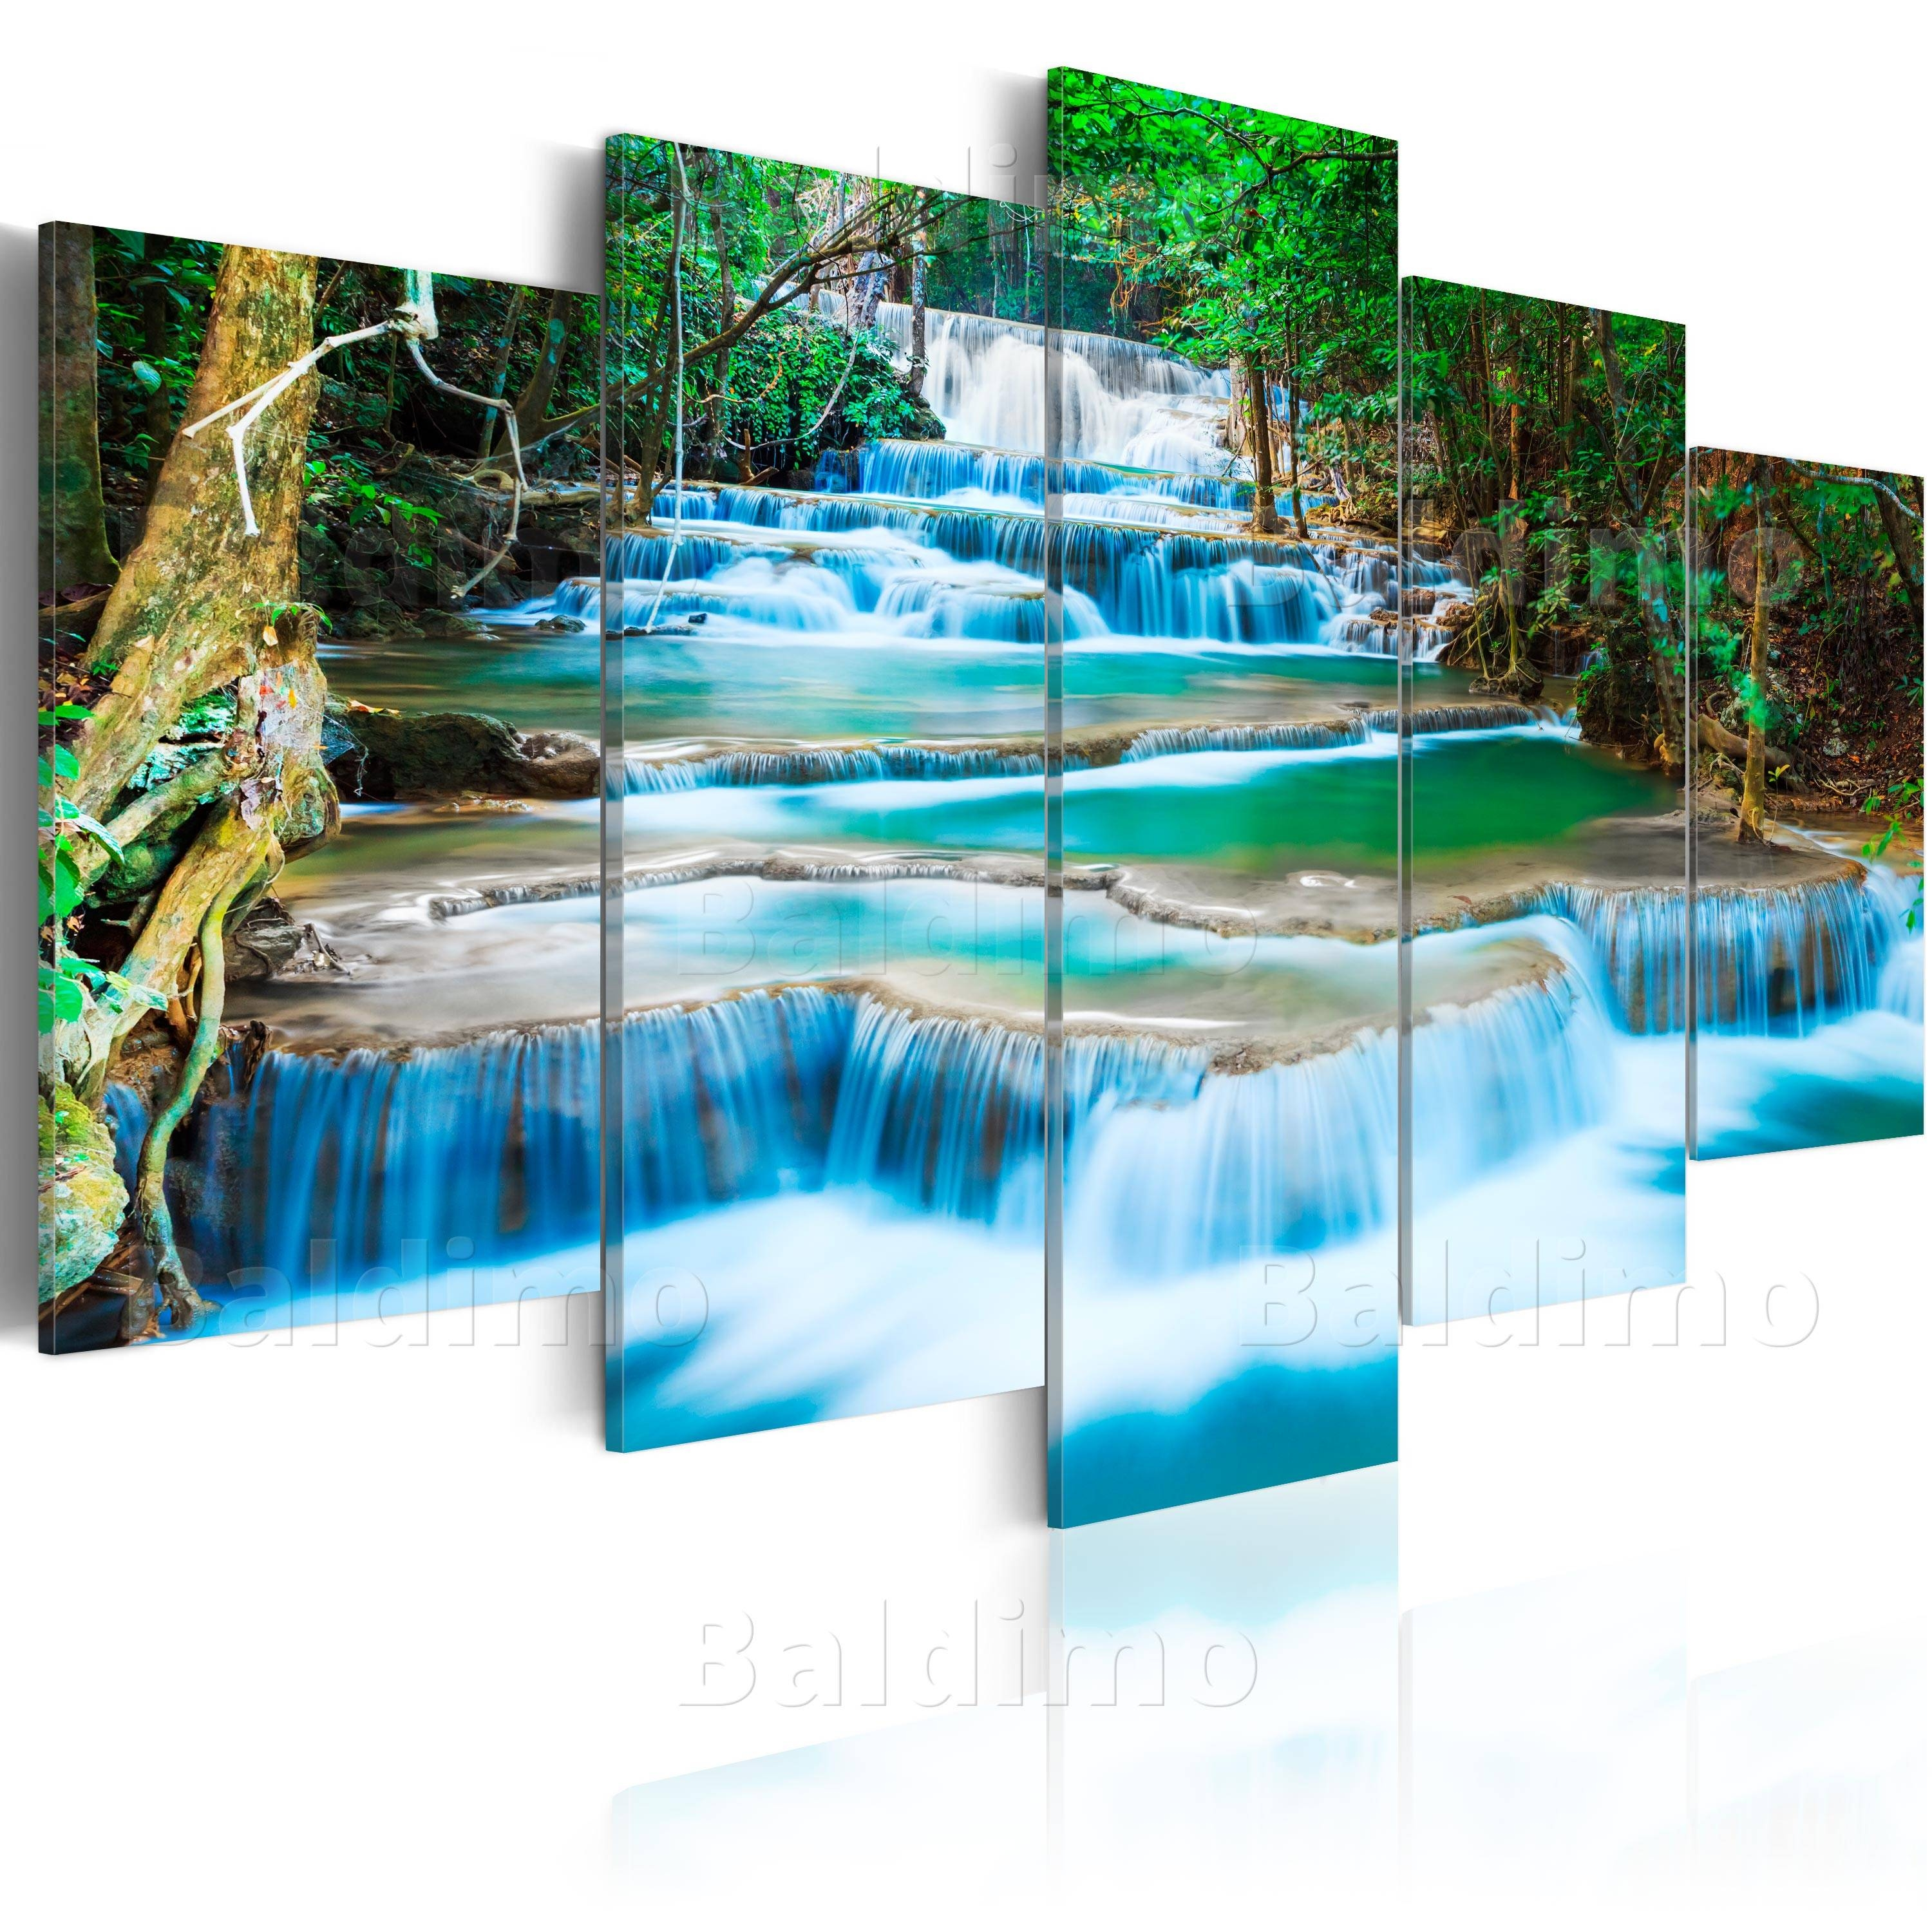 5Panels Large Buddha Waterfall Art Print Picture Canvas Wall Art within Most Up-to-Date Waterfall Wall Art